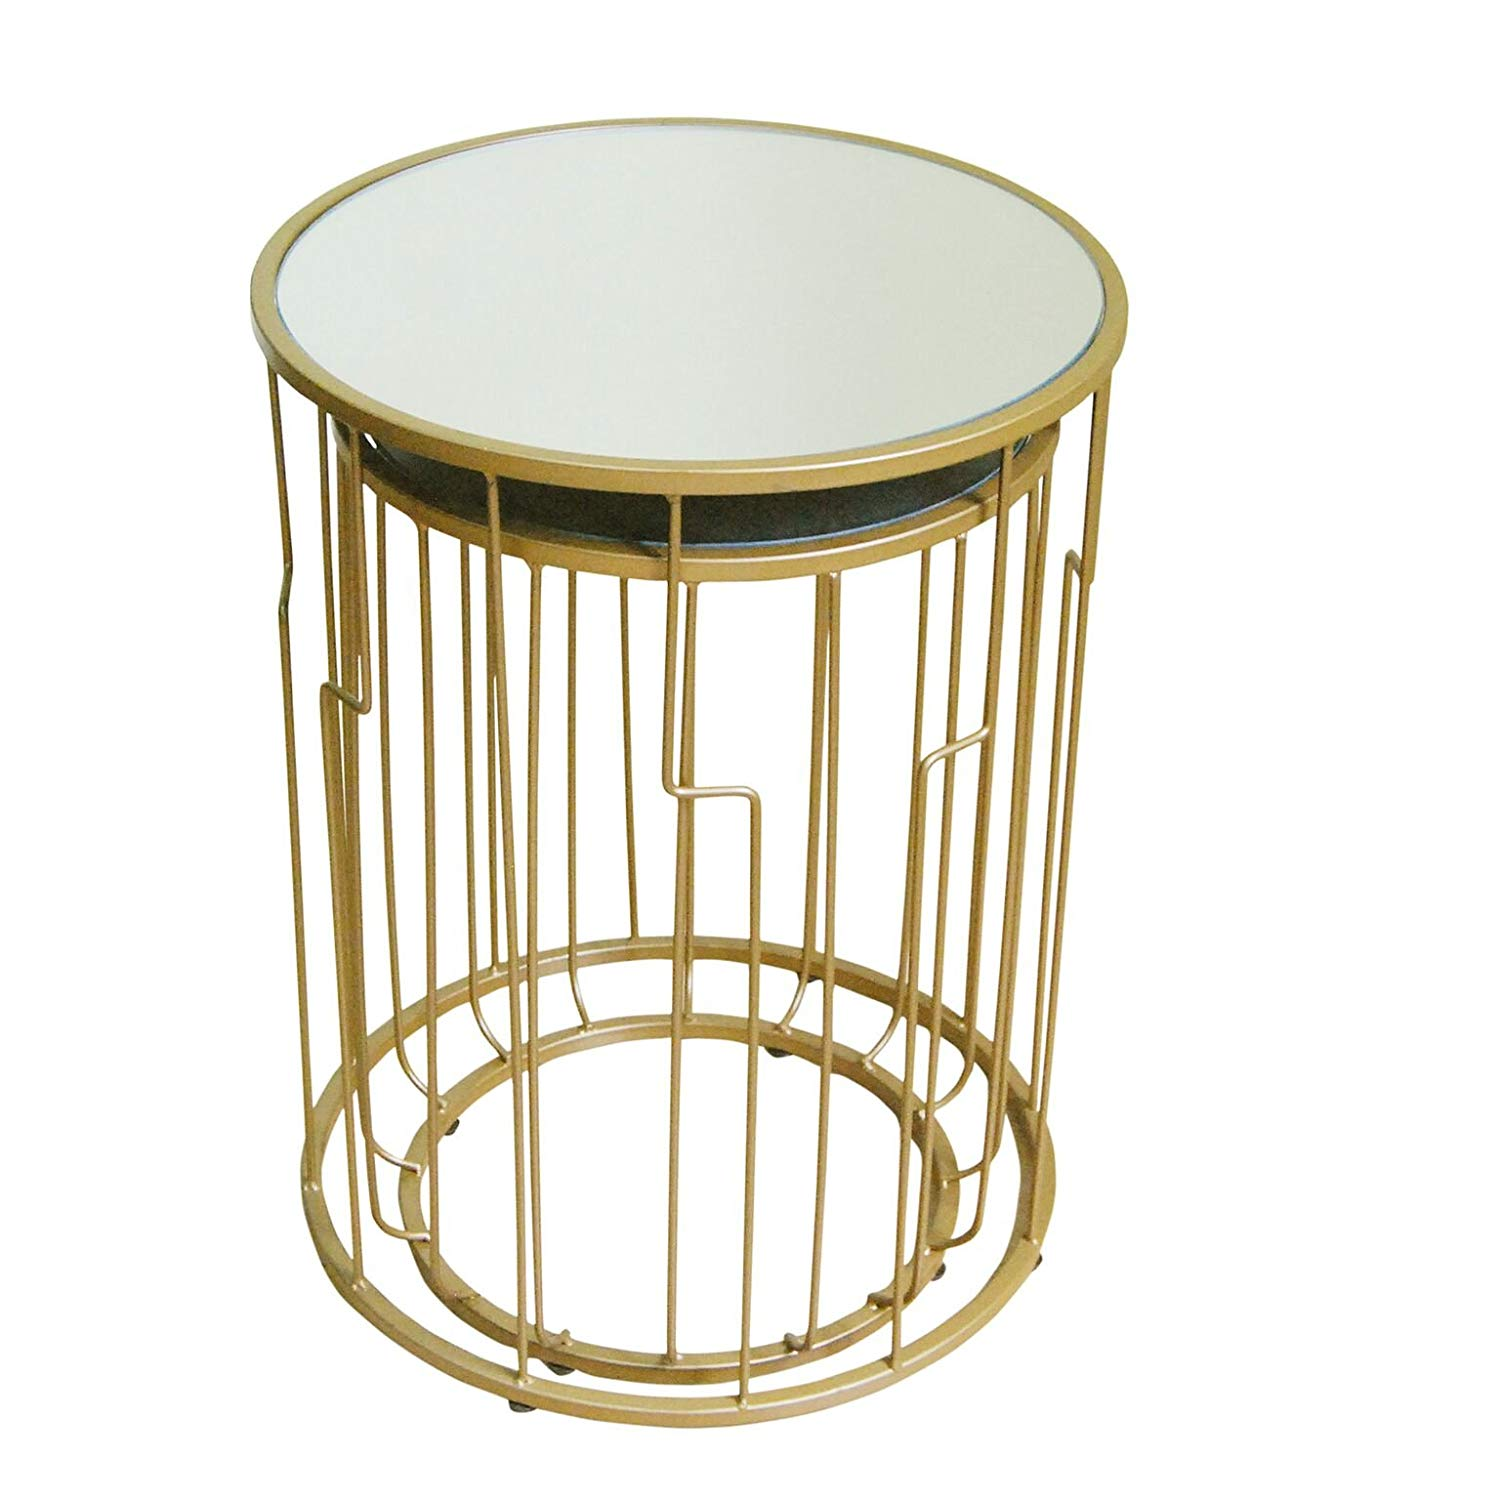 homepop metal accent nesting tables with glass table top set gold kitchen dining piece patio sets clearance small lucite walnut side ikea wheels threshold seal concrete mosaic